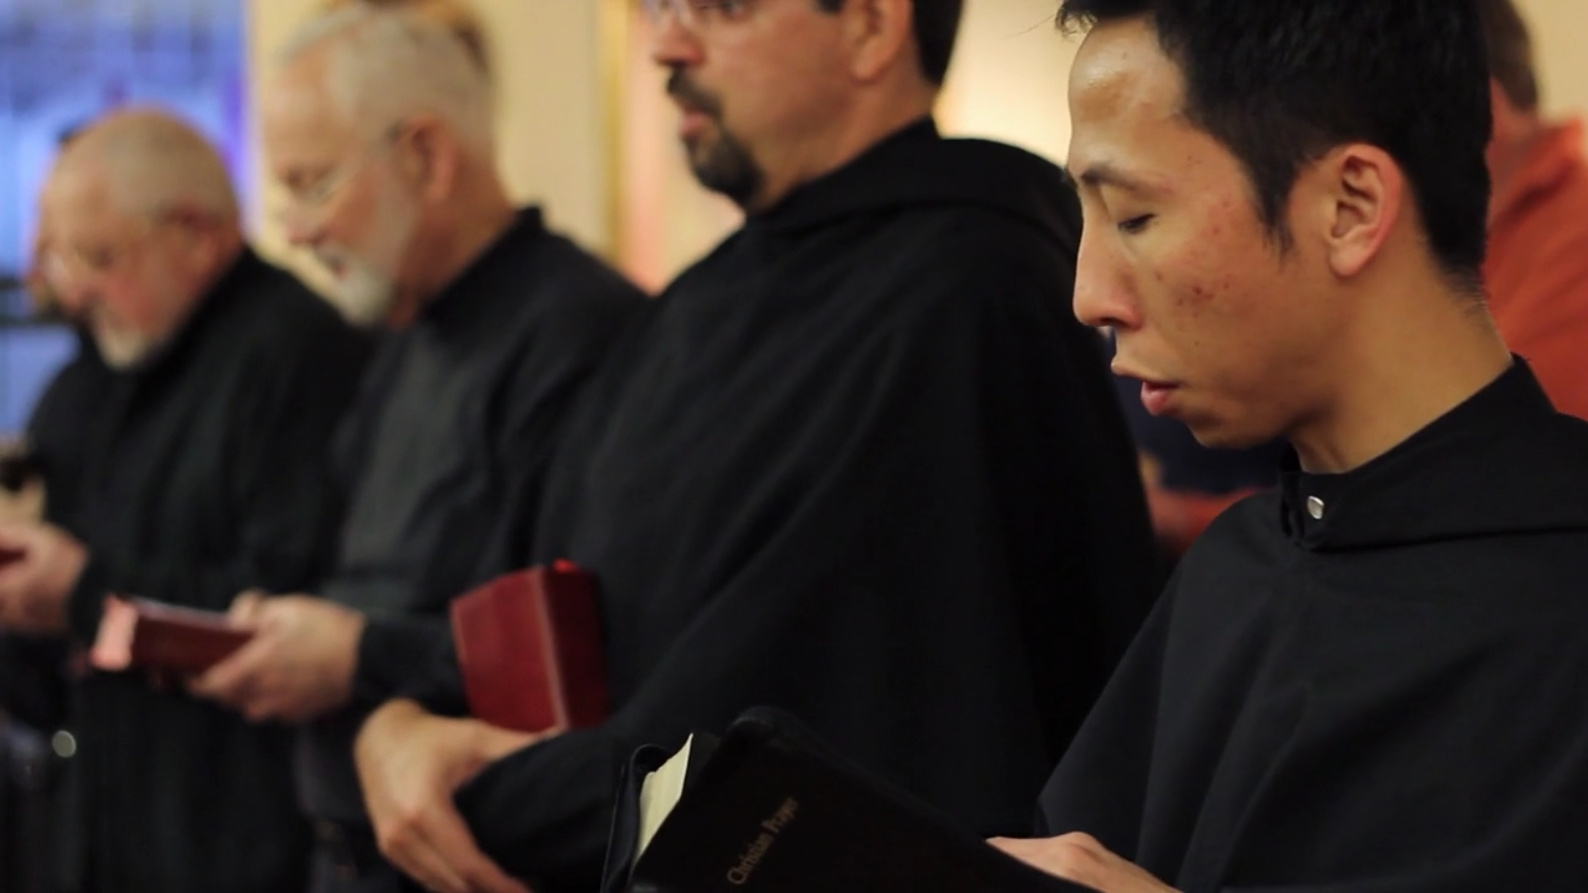 Augustinians share in daily prayer in each community, including at St. Augustine Friary in Chicago, as seen above.